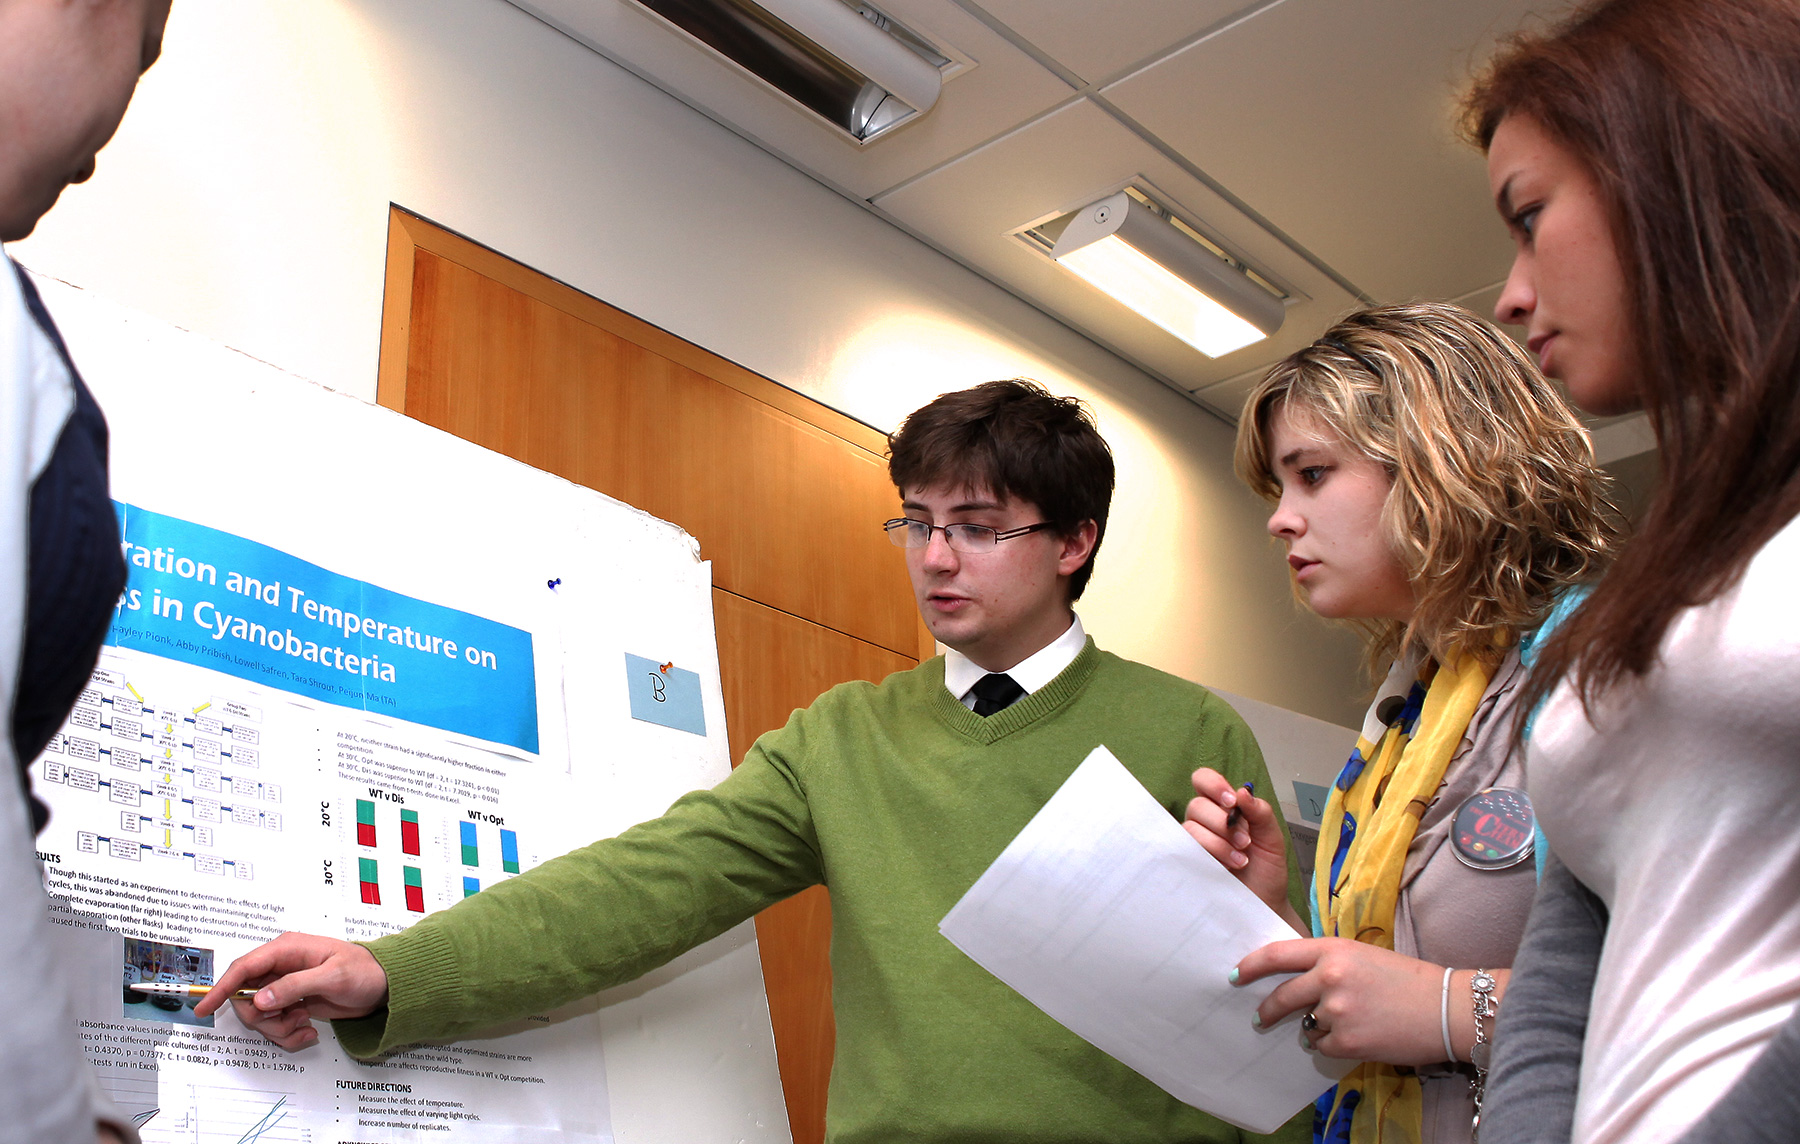 BSC 111c poster session